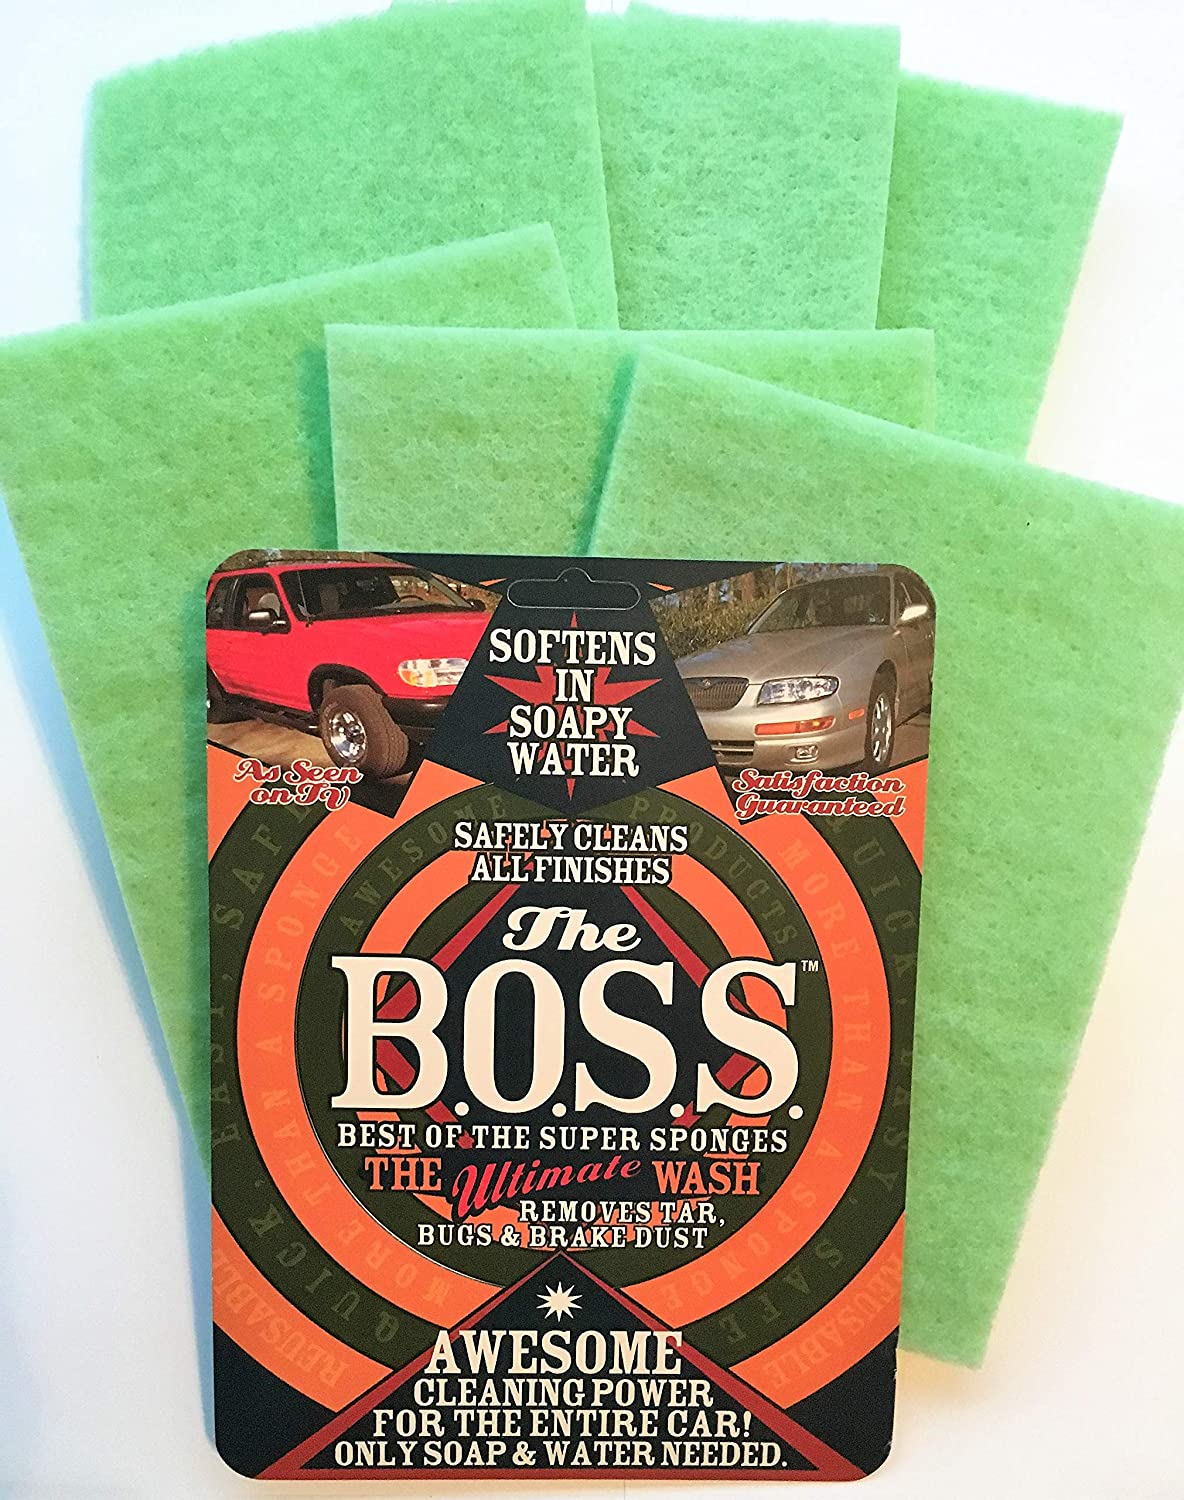 BOSS Bug Removing Sponge, Pack of 6 for the Price of 4!